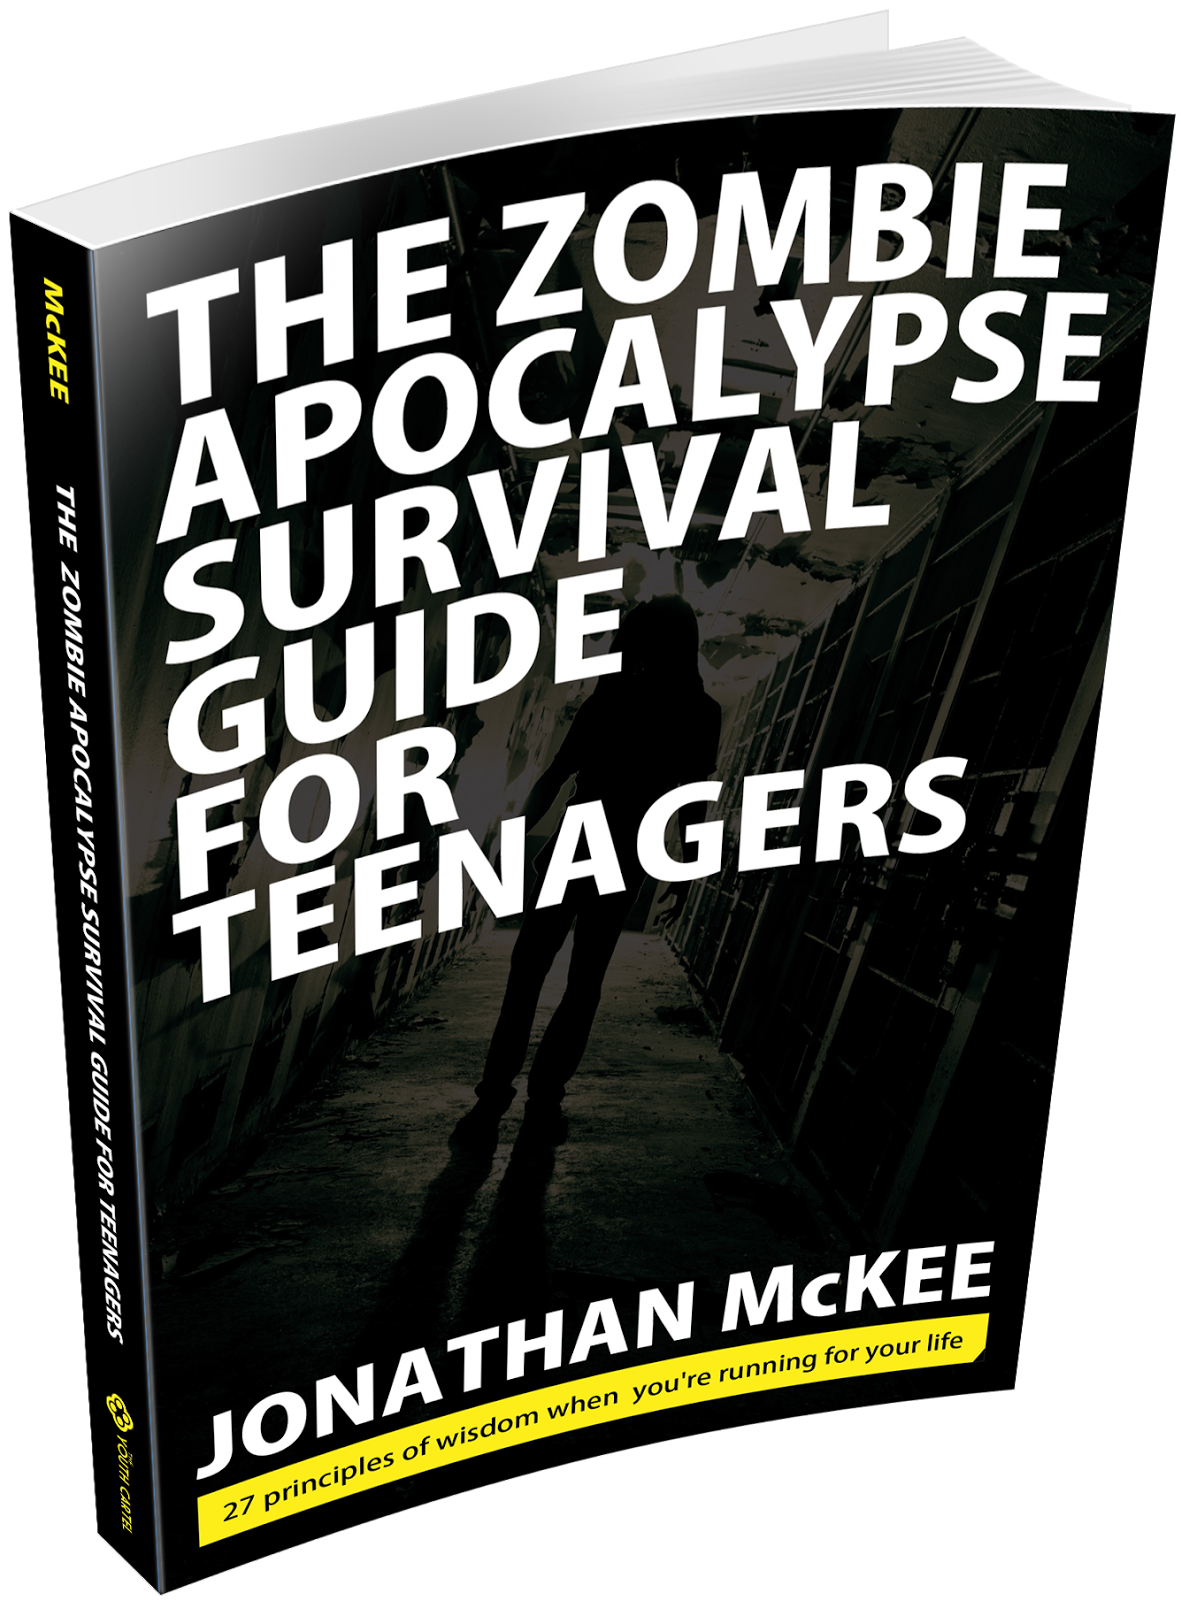 zombie dating guide Upc 9780984901807 the girls' guide to dating zombies info, barcode, images, gtin registration & where to buy online hattie cross knows what you're thinking: zombie sex.